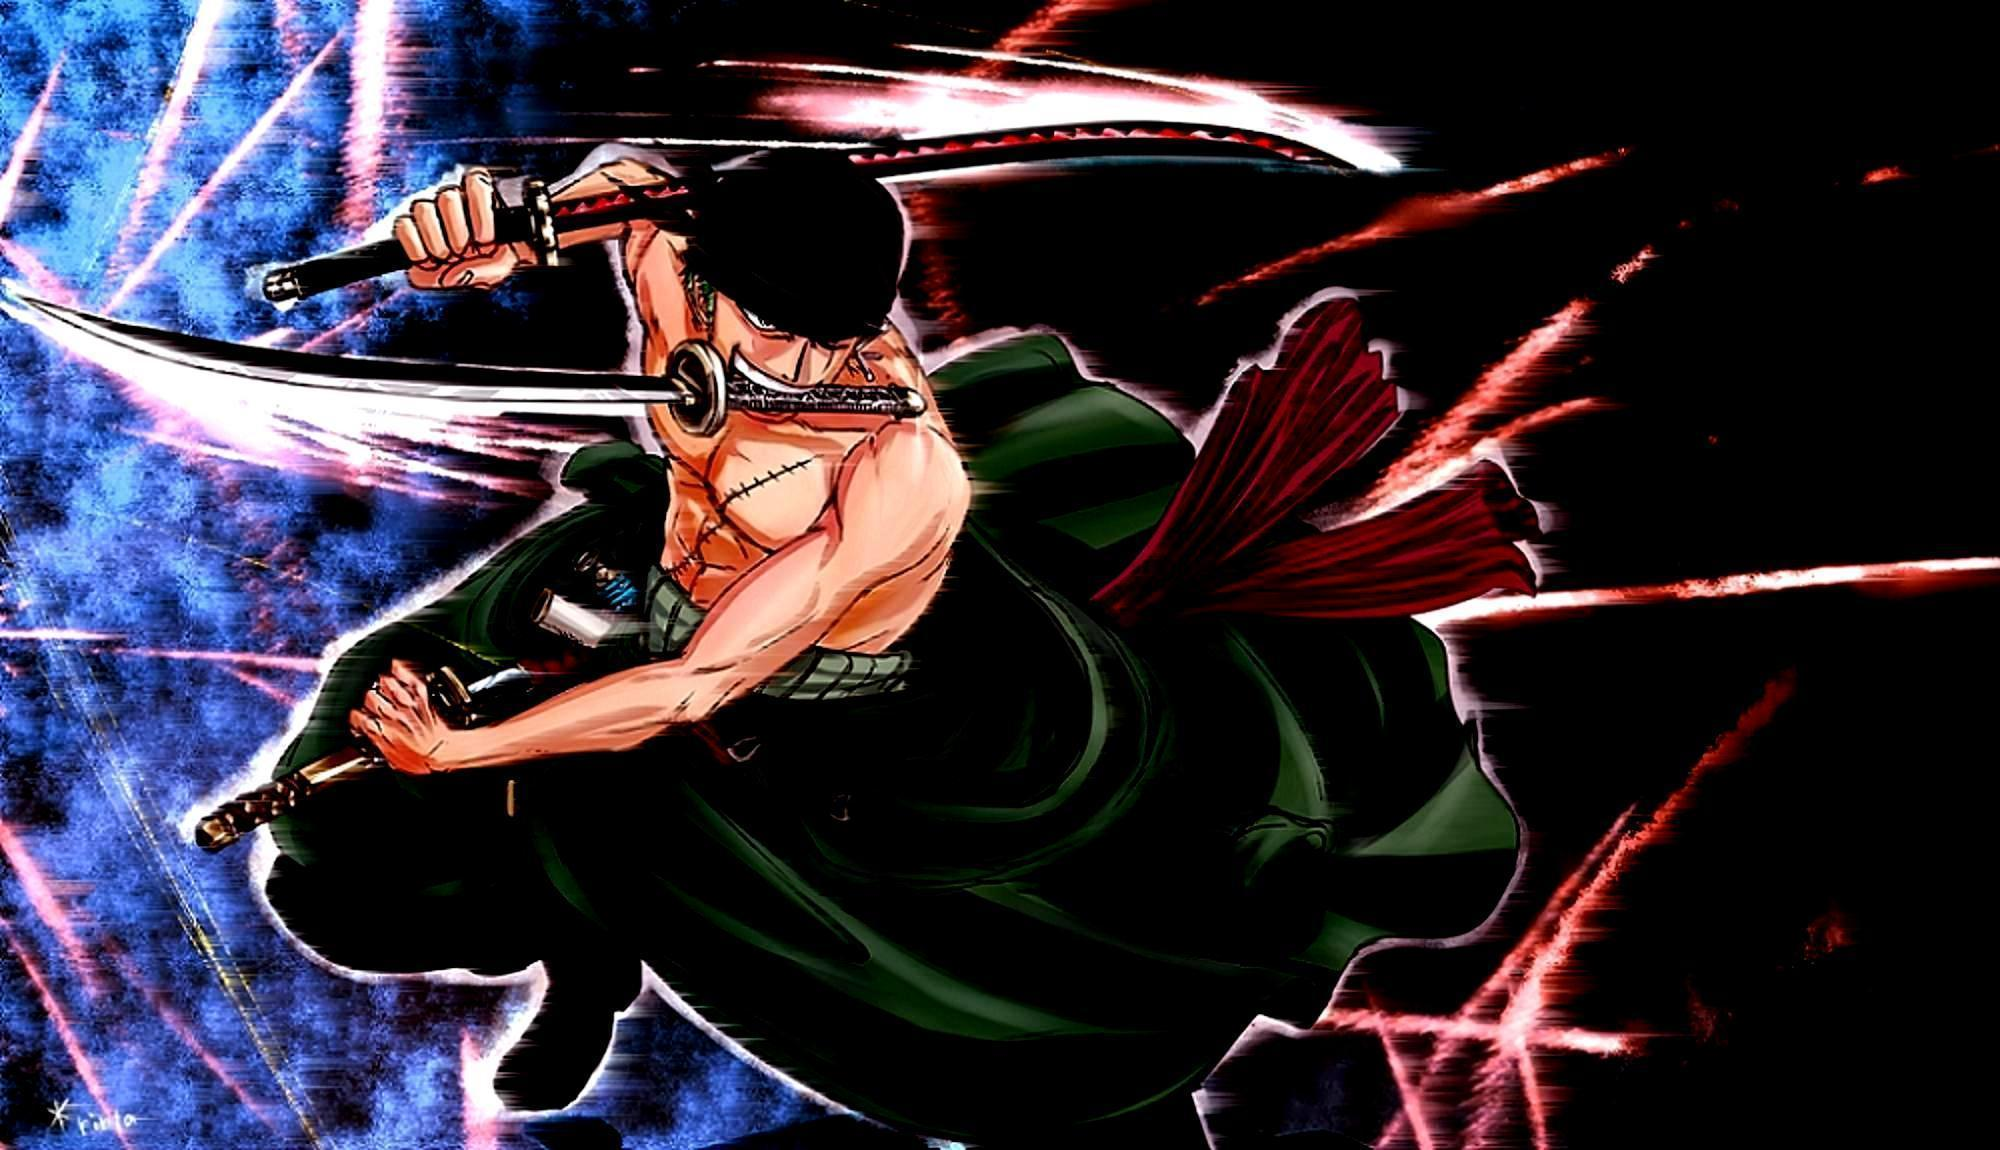 Hd wallpaper one piece zoro - Wallpapers For One Piece Zoro Wallpaper Hd Desktop